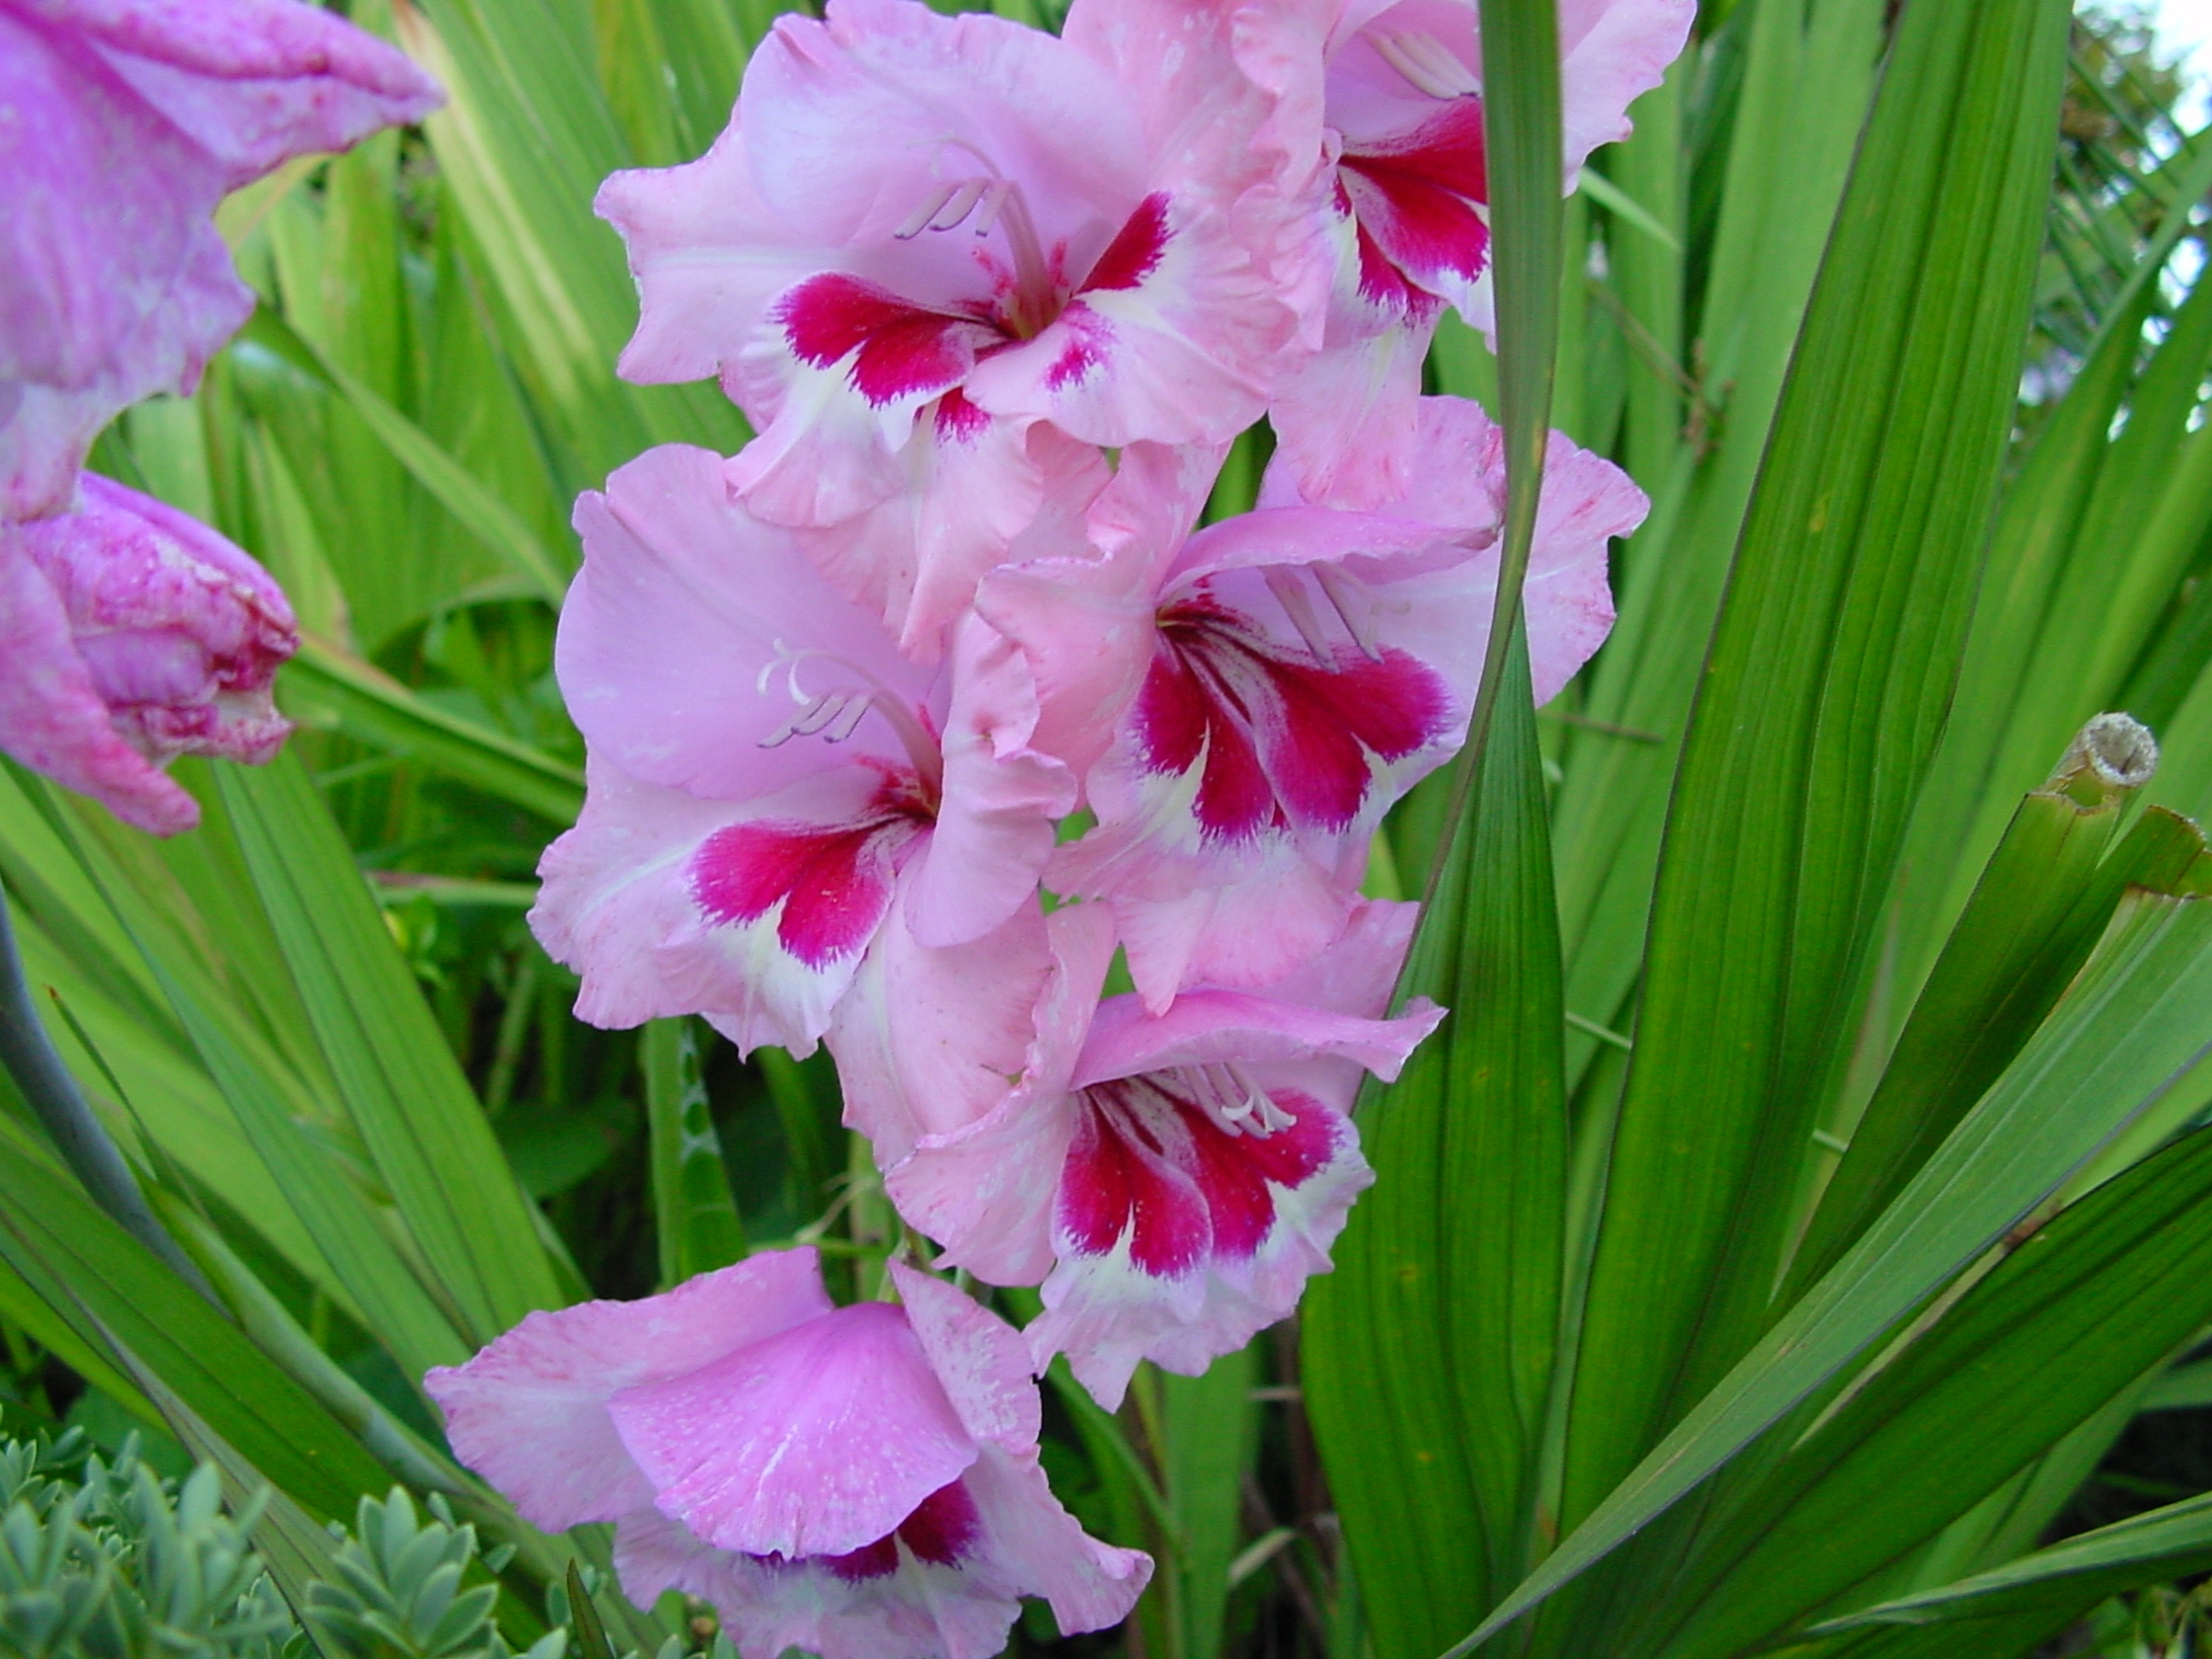 136588 download wallpaper Flowers, Leaves, Gladiolus screensavers and pictures for free